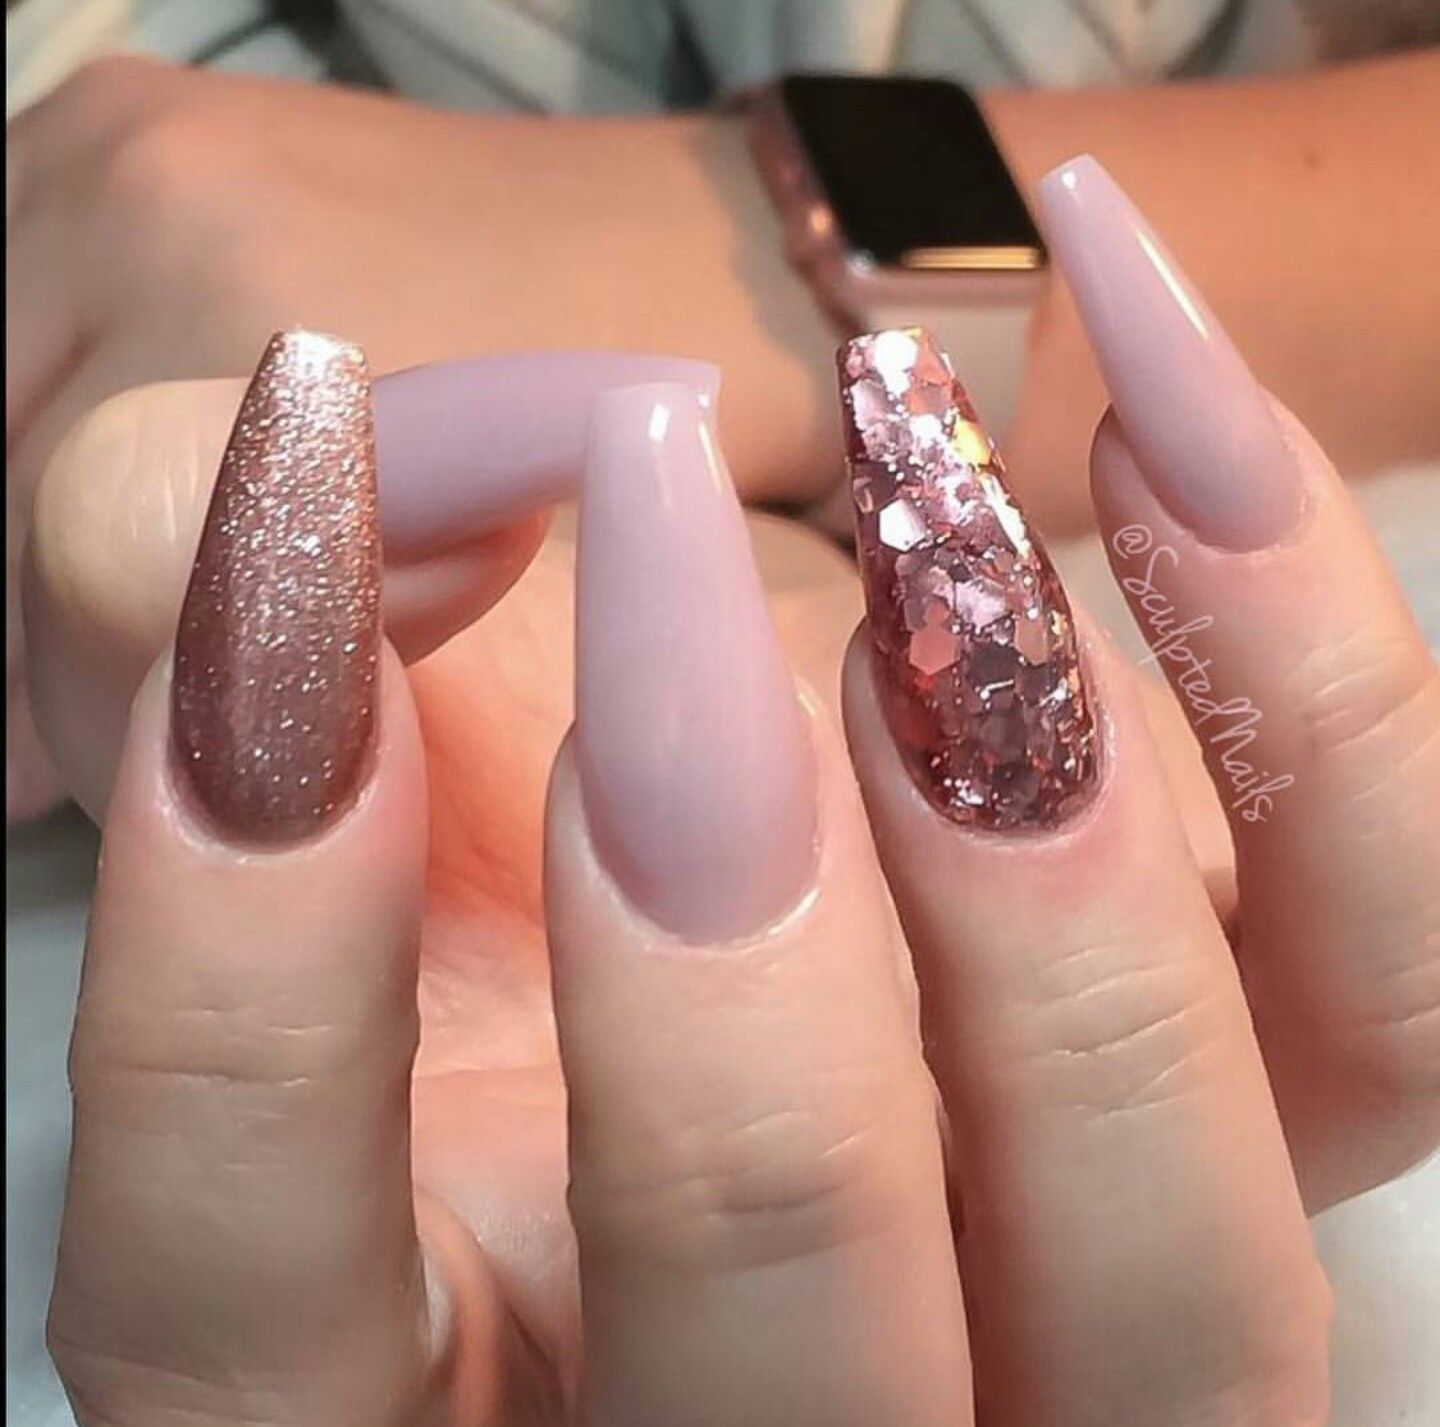 Pretty nude nails #nailgoals | Fashion Nails To Match Outfits ...